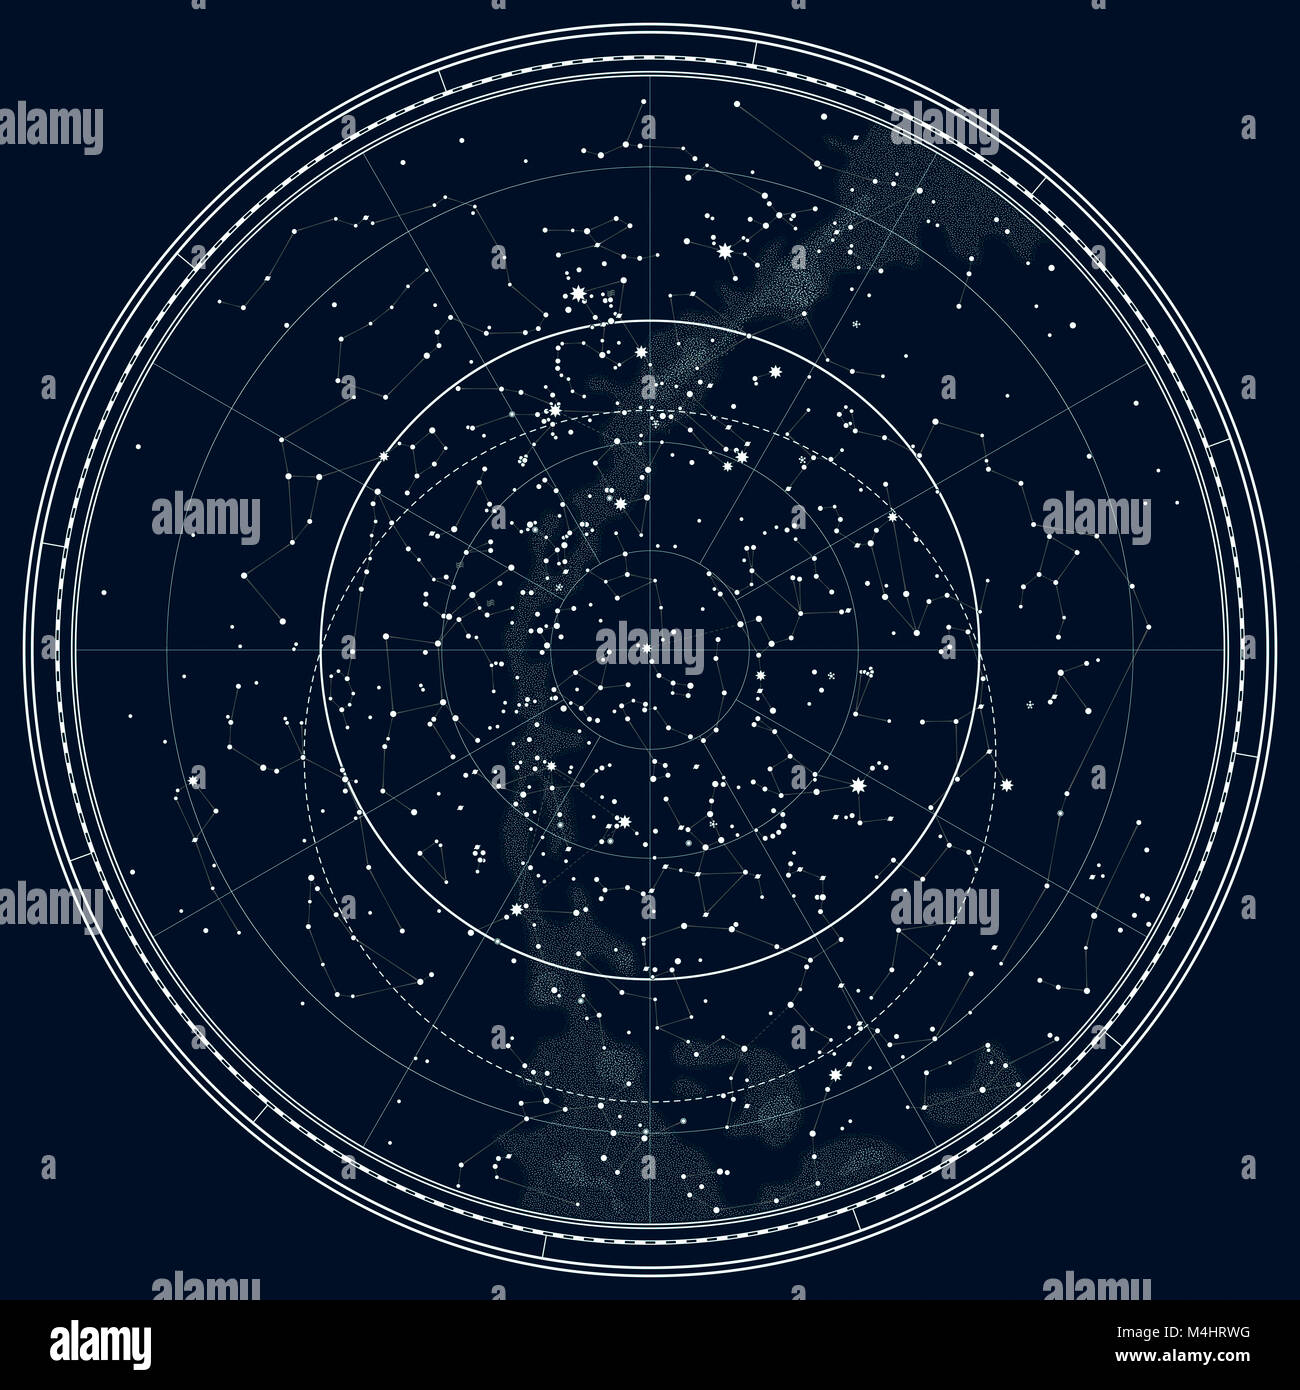 Astronomical Celestial Map of The Northern Hemisphere (Detailed Black Ink version) - Stock Image